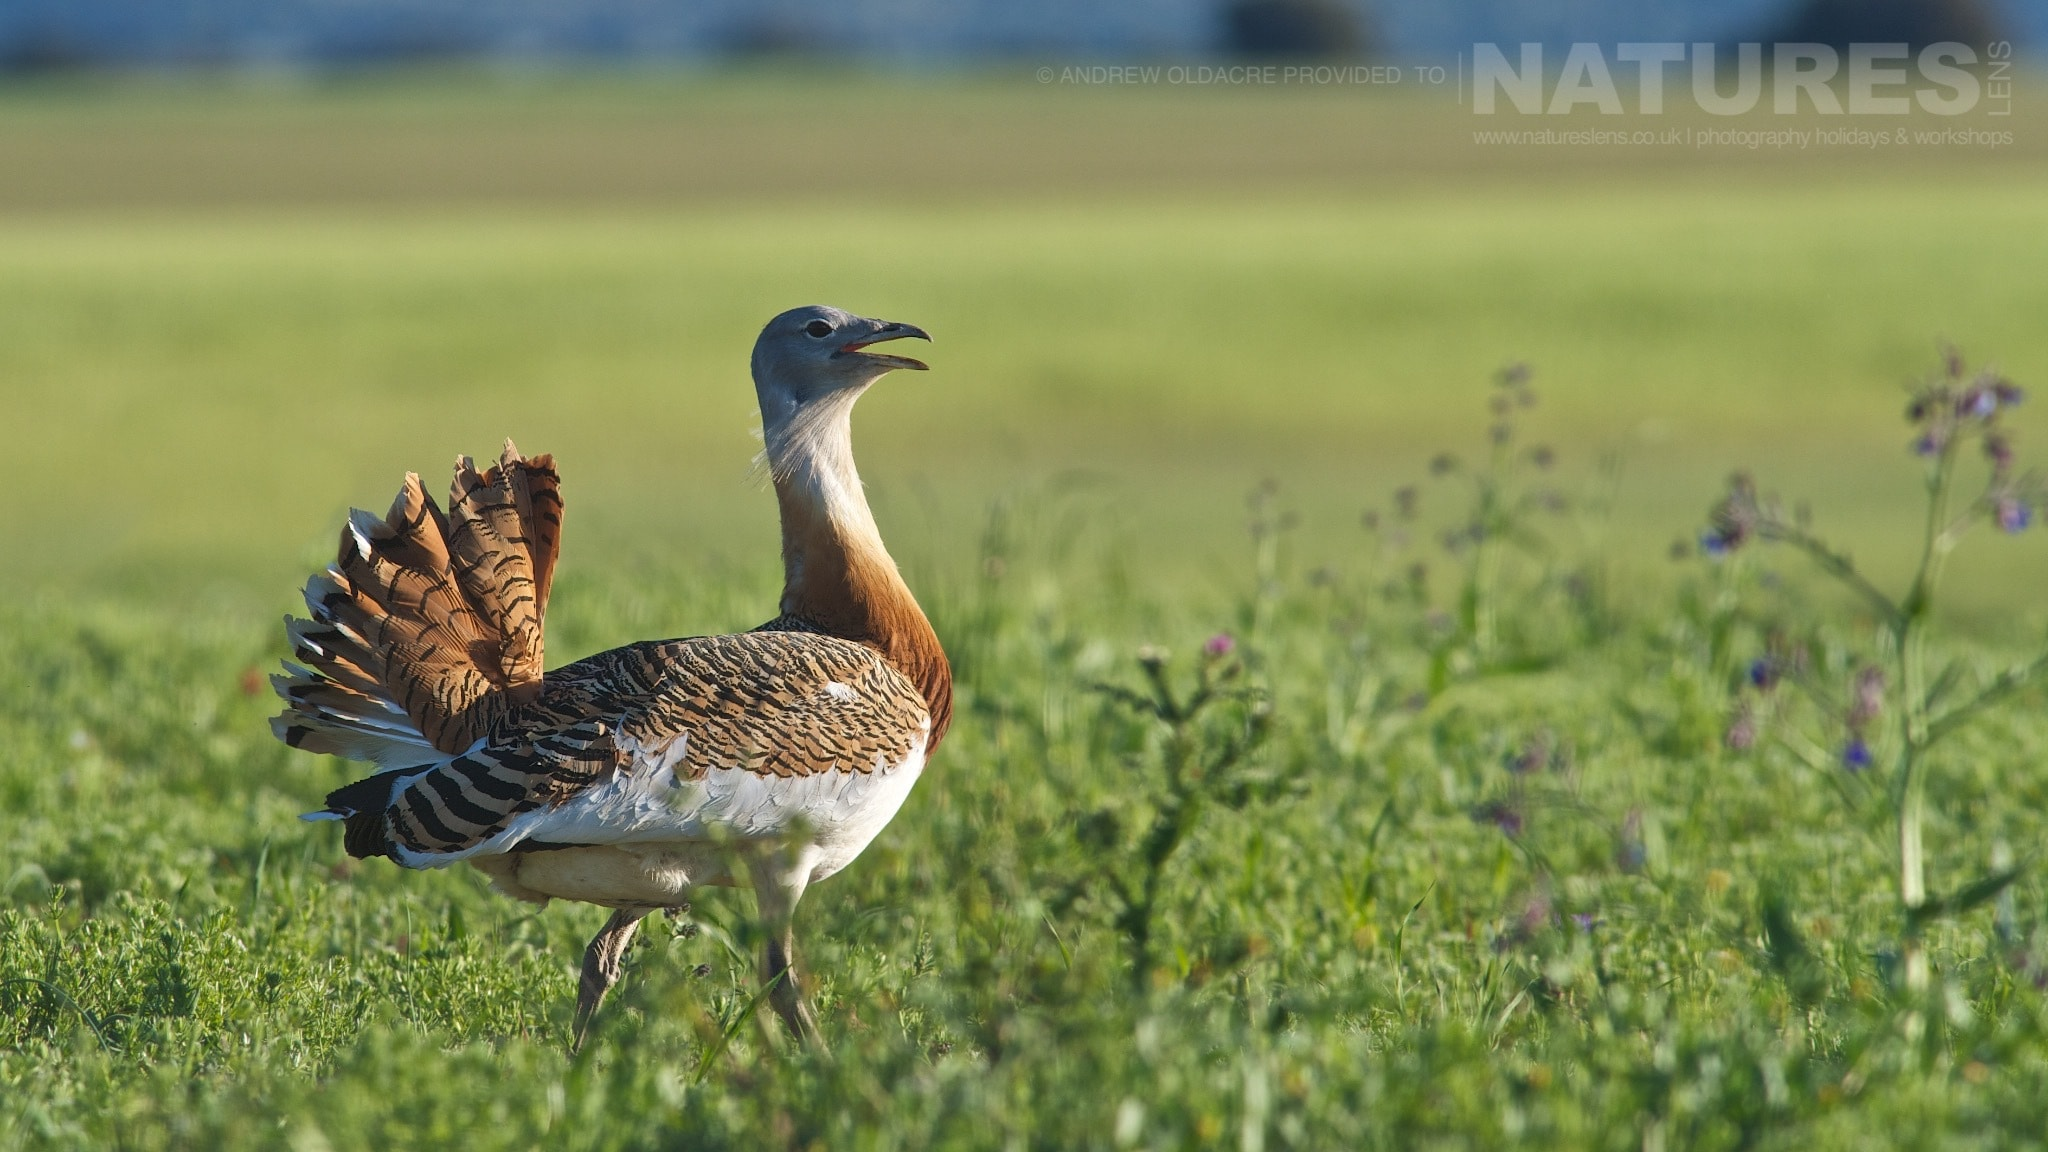 A Greater Bustard on the Spanish plains - photographed on the NaturesLens Birds of Calera Photography Holiday